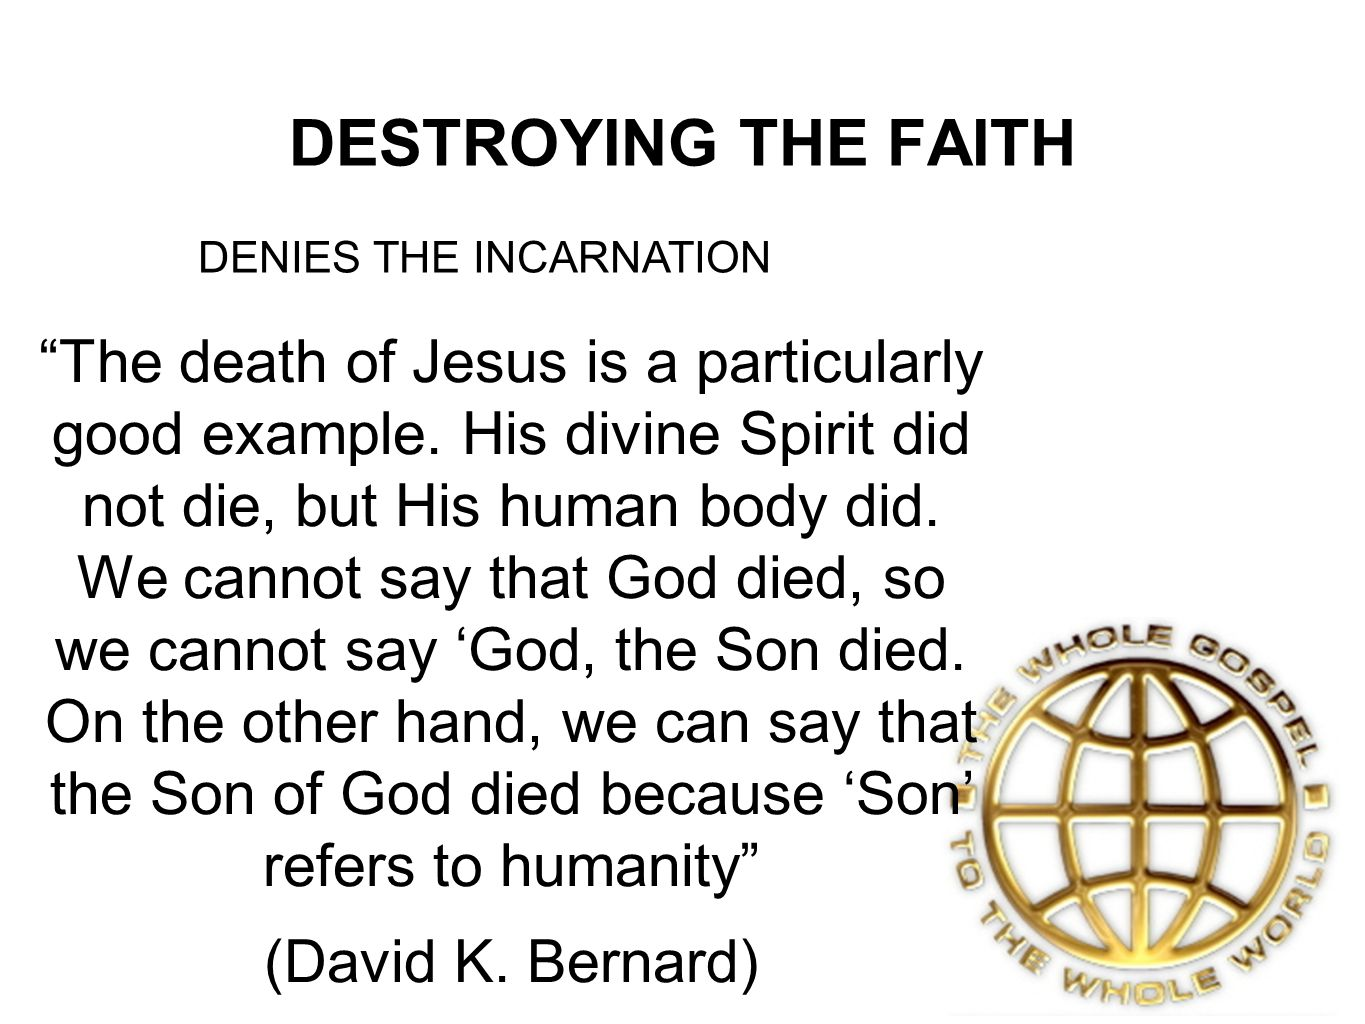 DESTROYING THE FAITH The death of Jesus is a particularly good example.